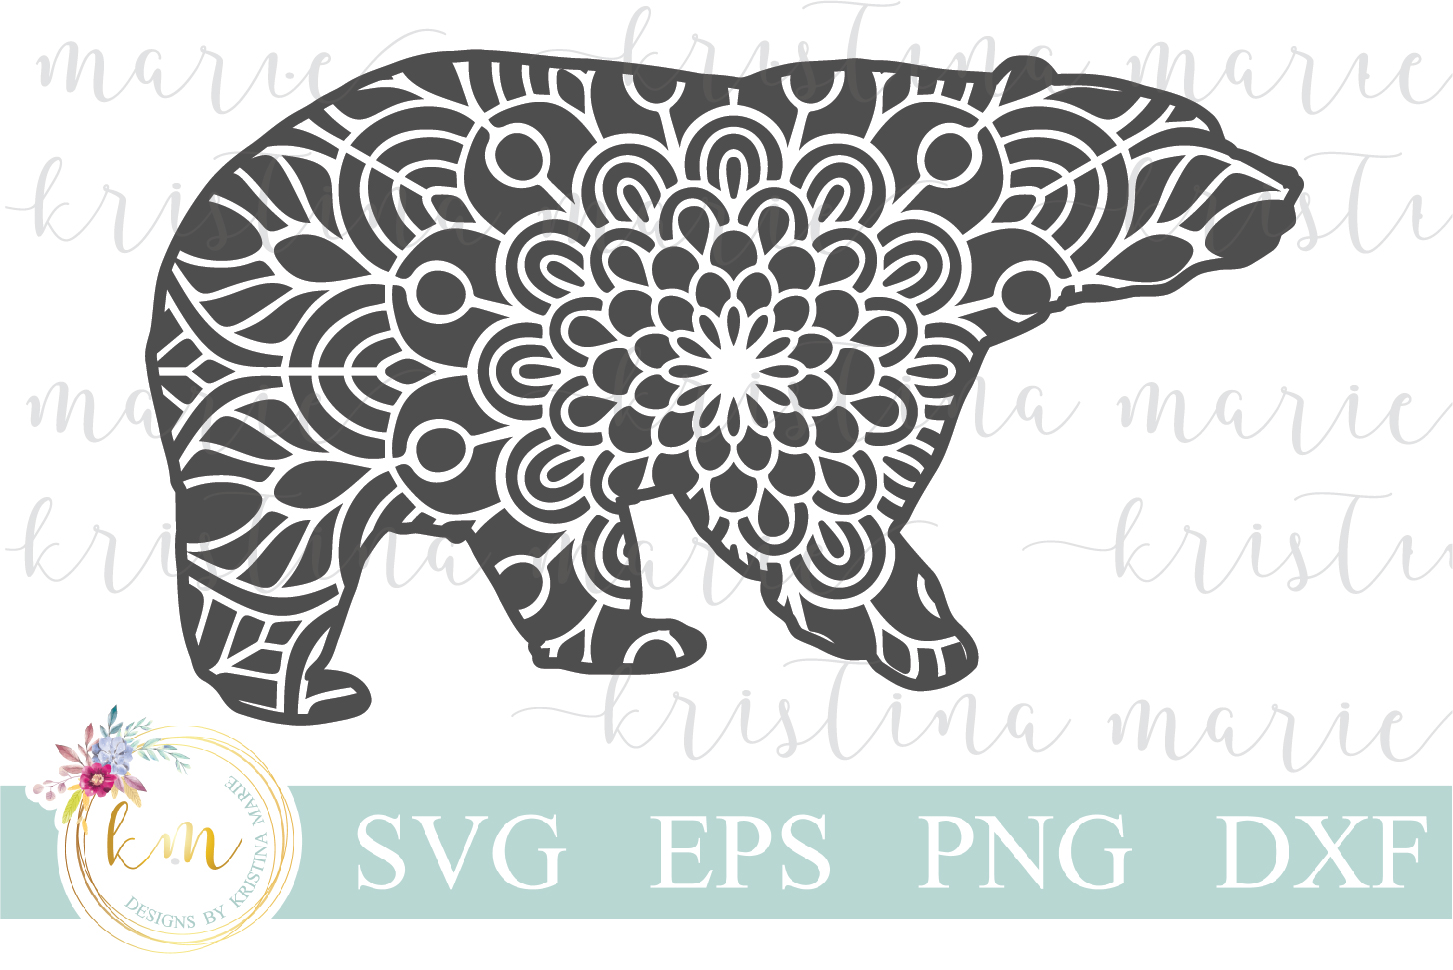 Download Free Mandala Bear Cut File Graphic By Kristina Marie Design for Cricut Explore, Silhouette and other cutting machines.